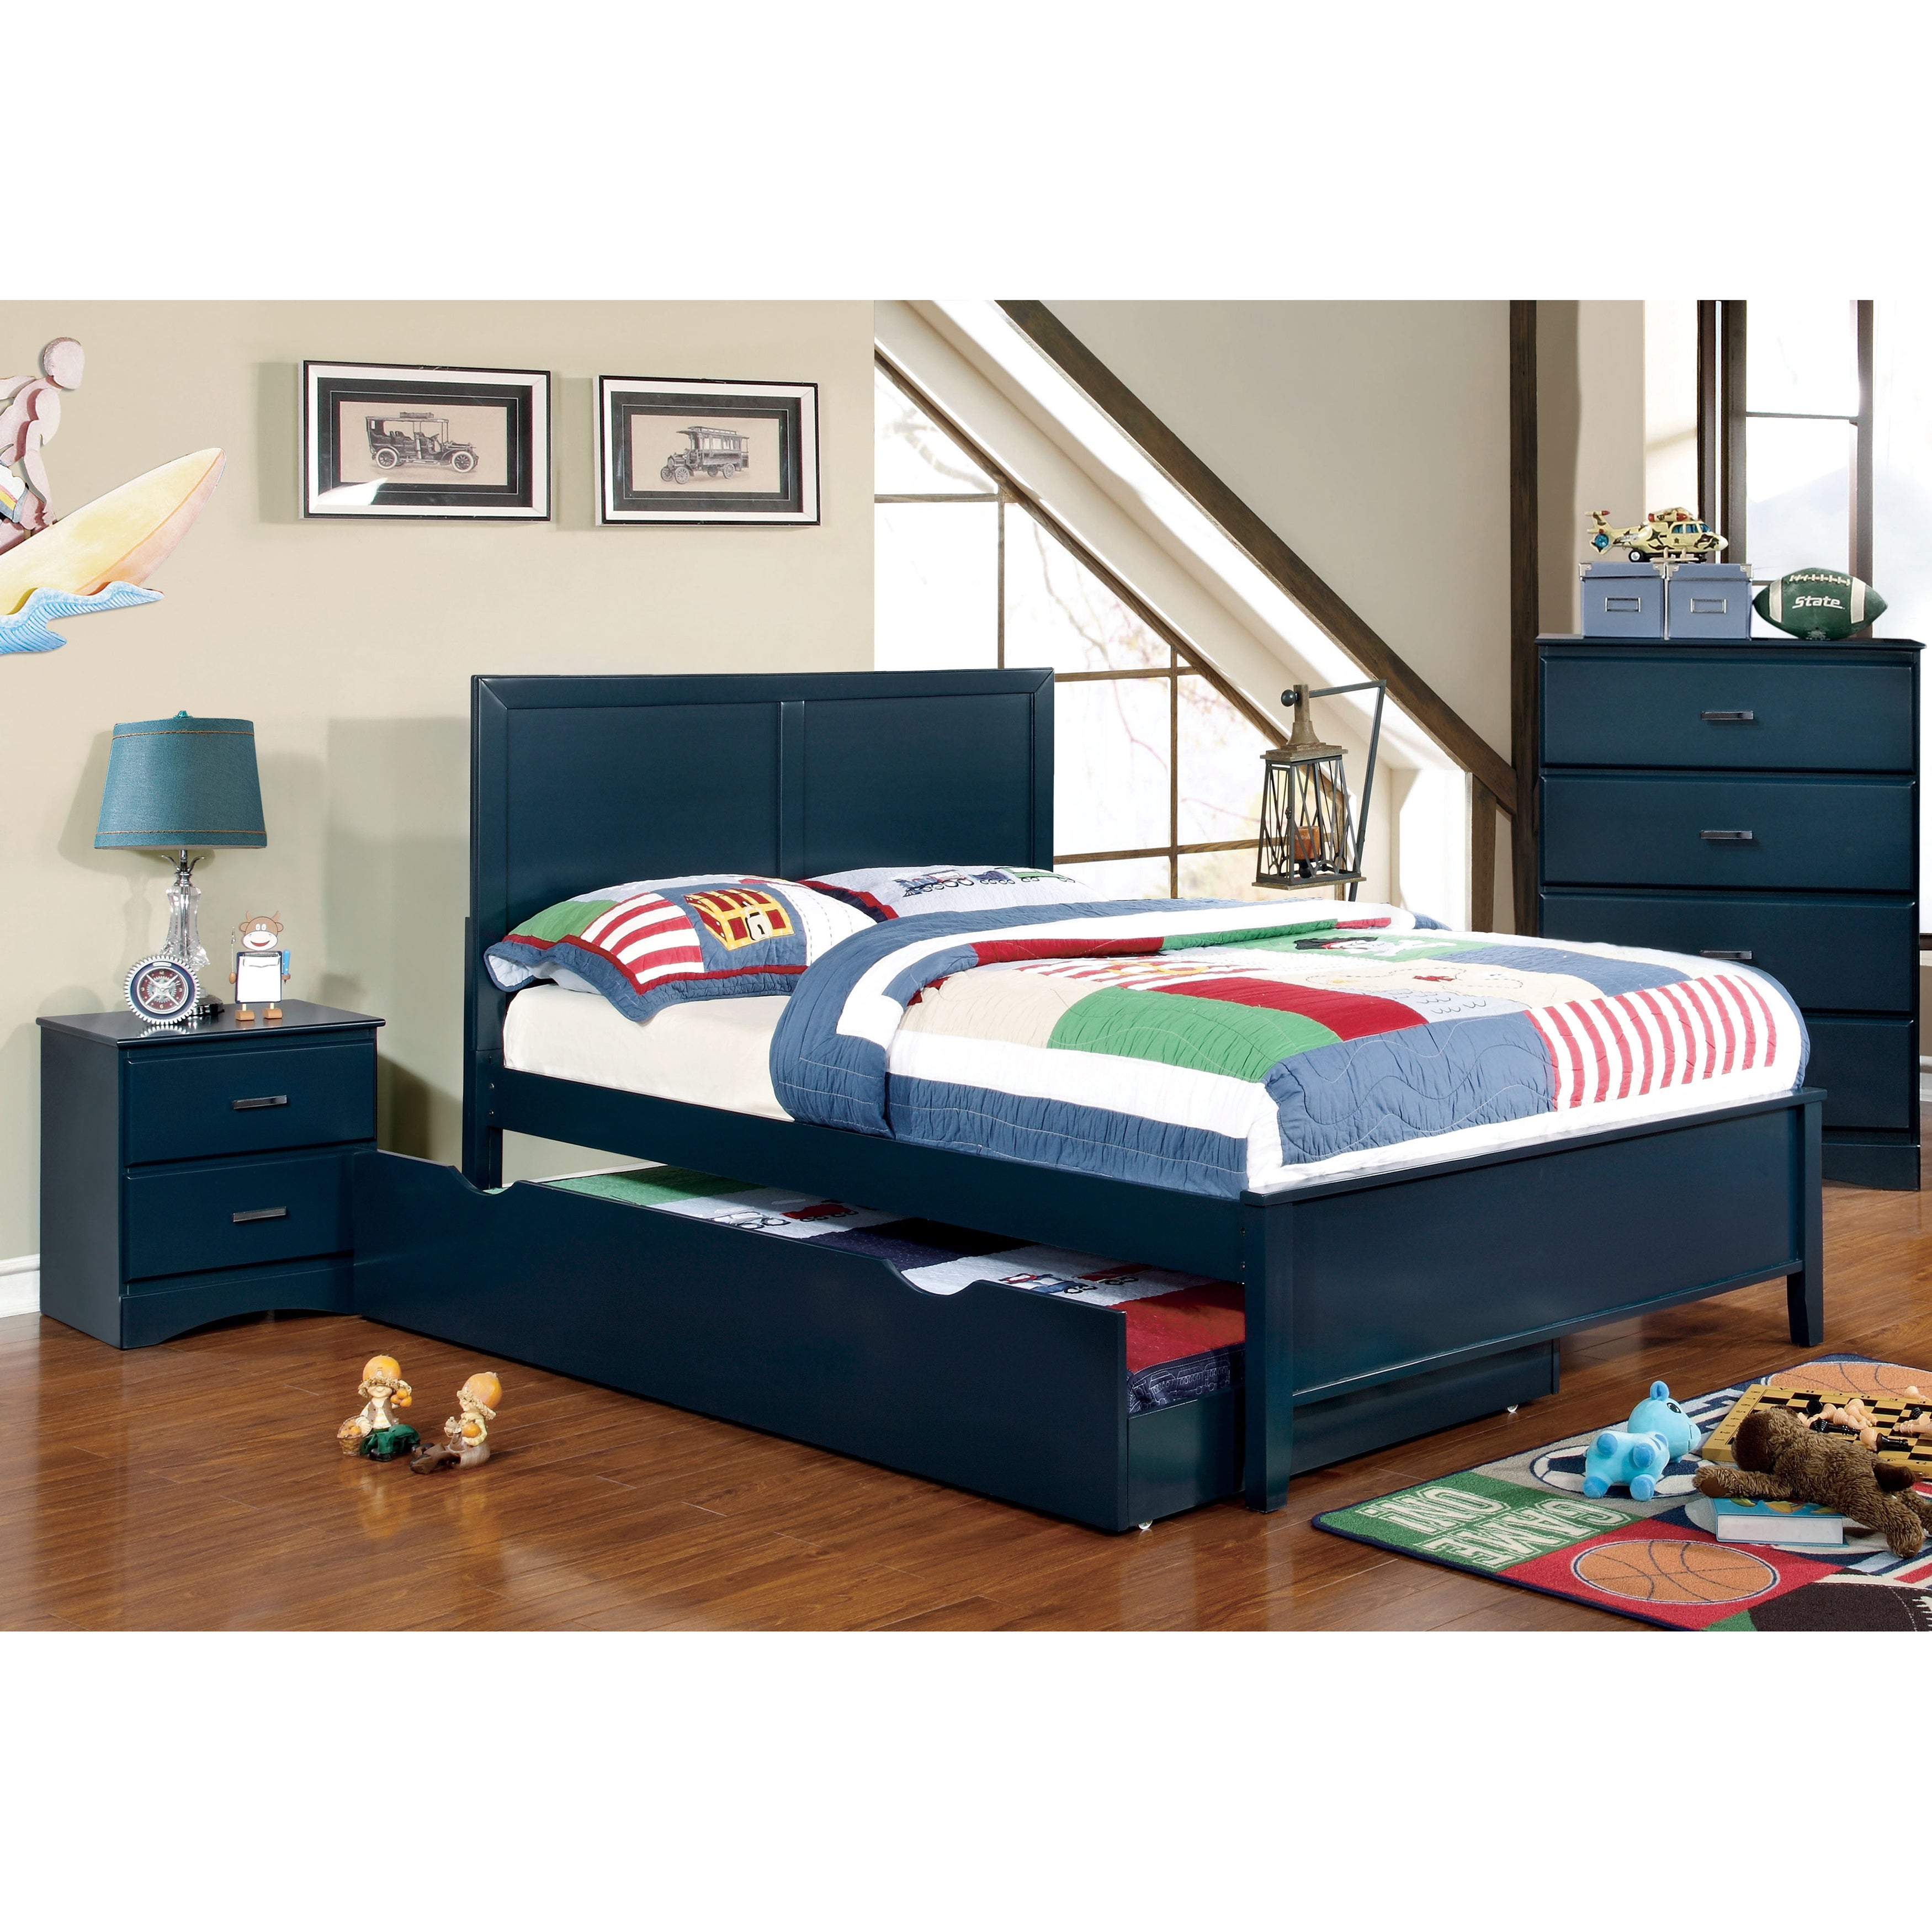 Shop Furniture Of America Pice Modern Full 4 Piece Youth Panel Bed Set Overstock 9833409